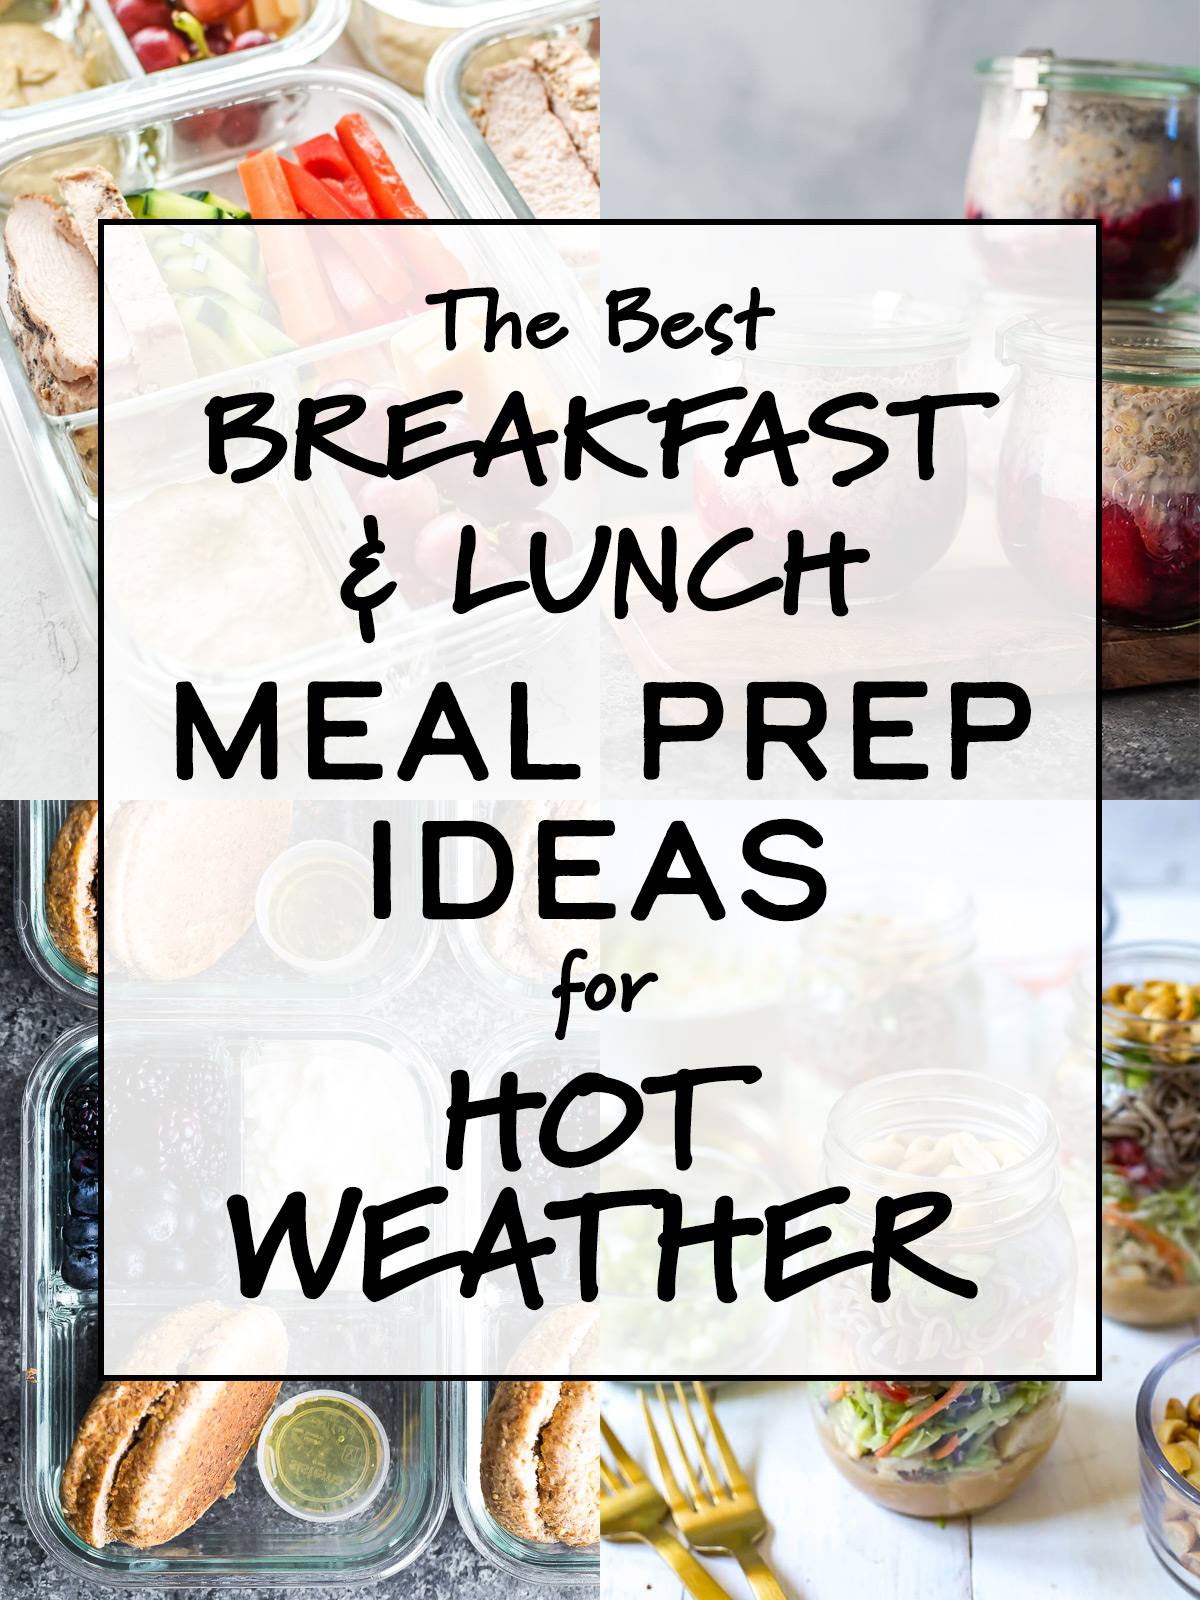 cover image for article The Best Breakfast & Lunch Meal Prep Ideas for Hot Weather